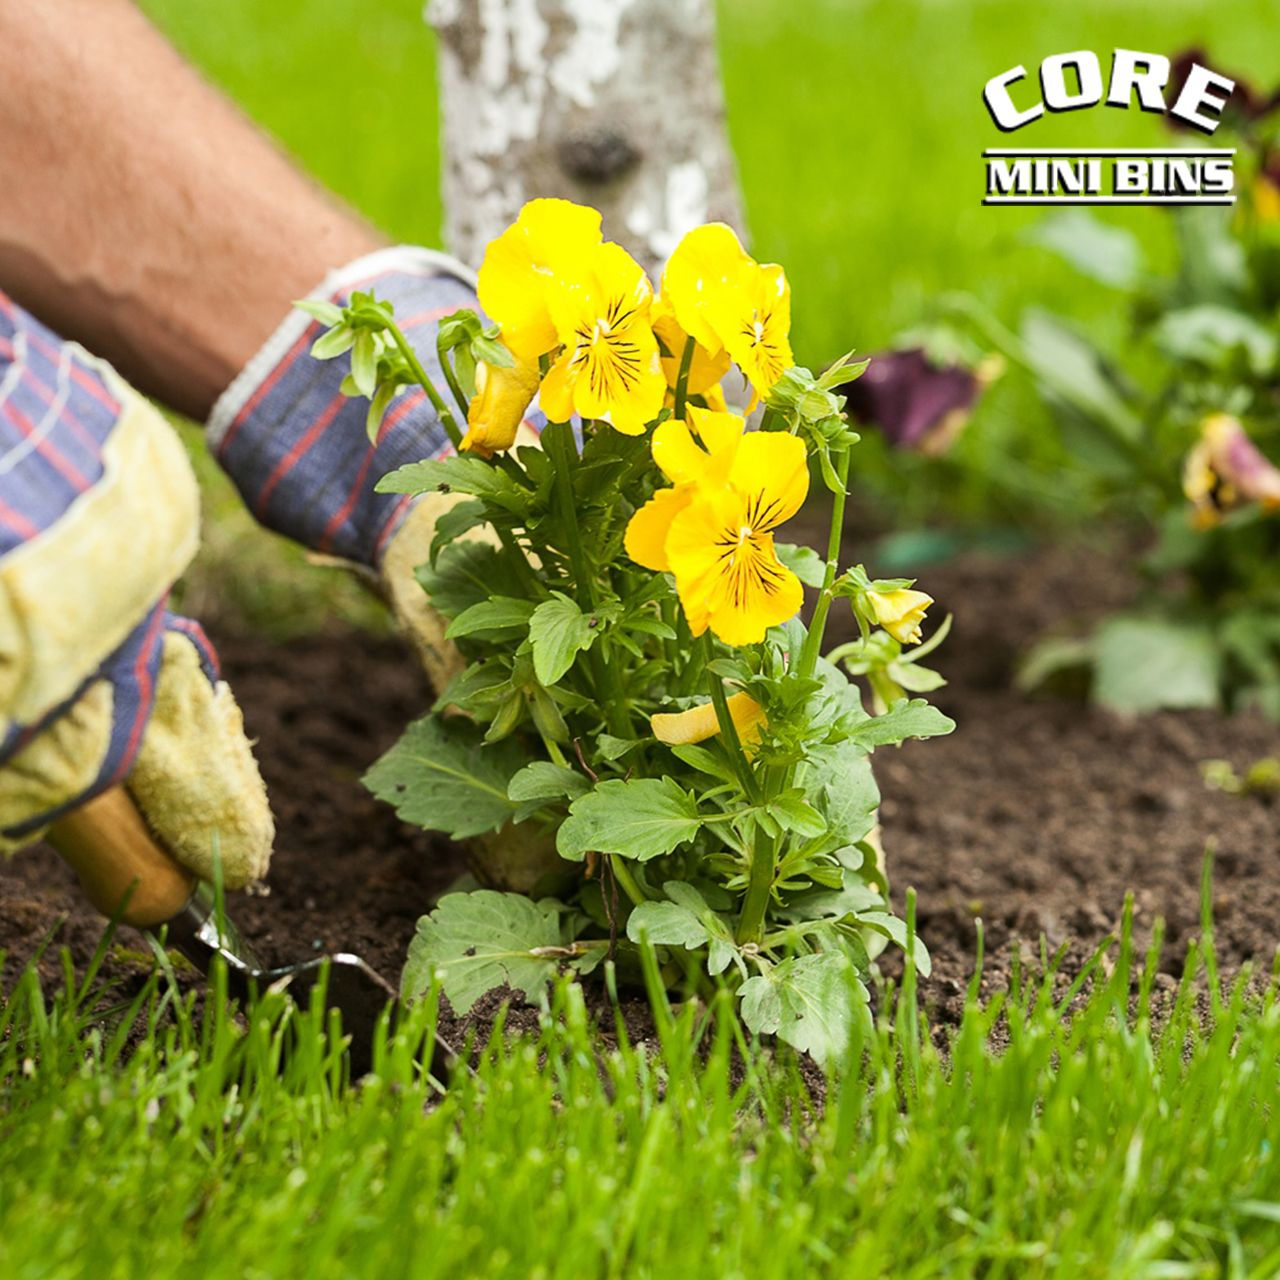 For your next garden or landscaping project, contact Core